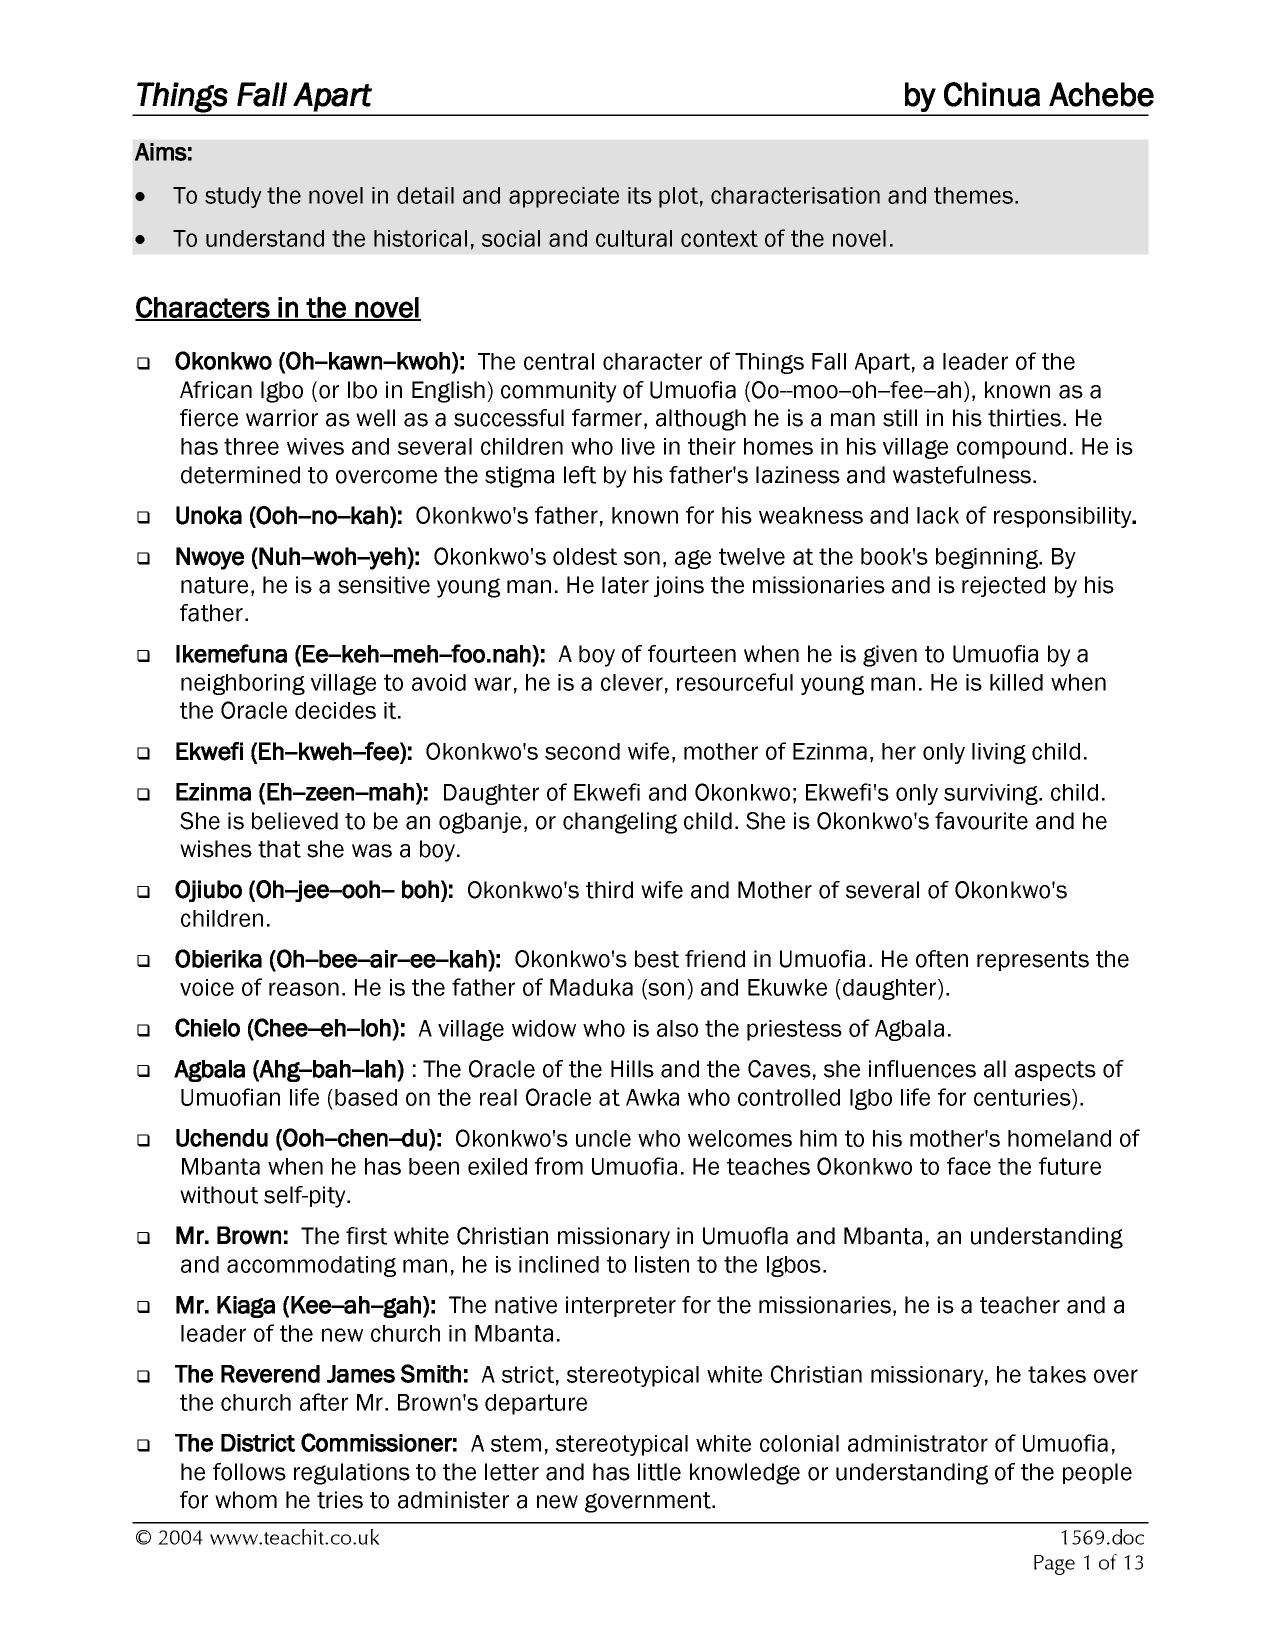 acdemic resume essay american scenery example of acknowledgement essay on things fall apart by chinua achebe report web things fall apart essay topics